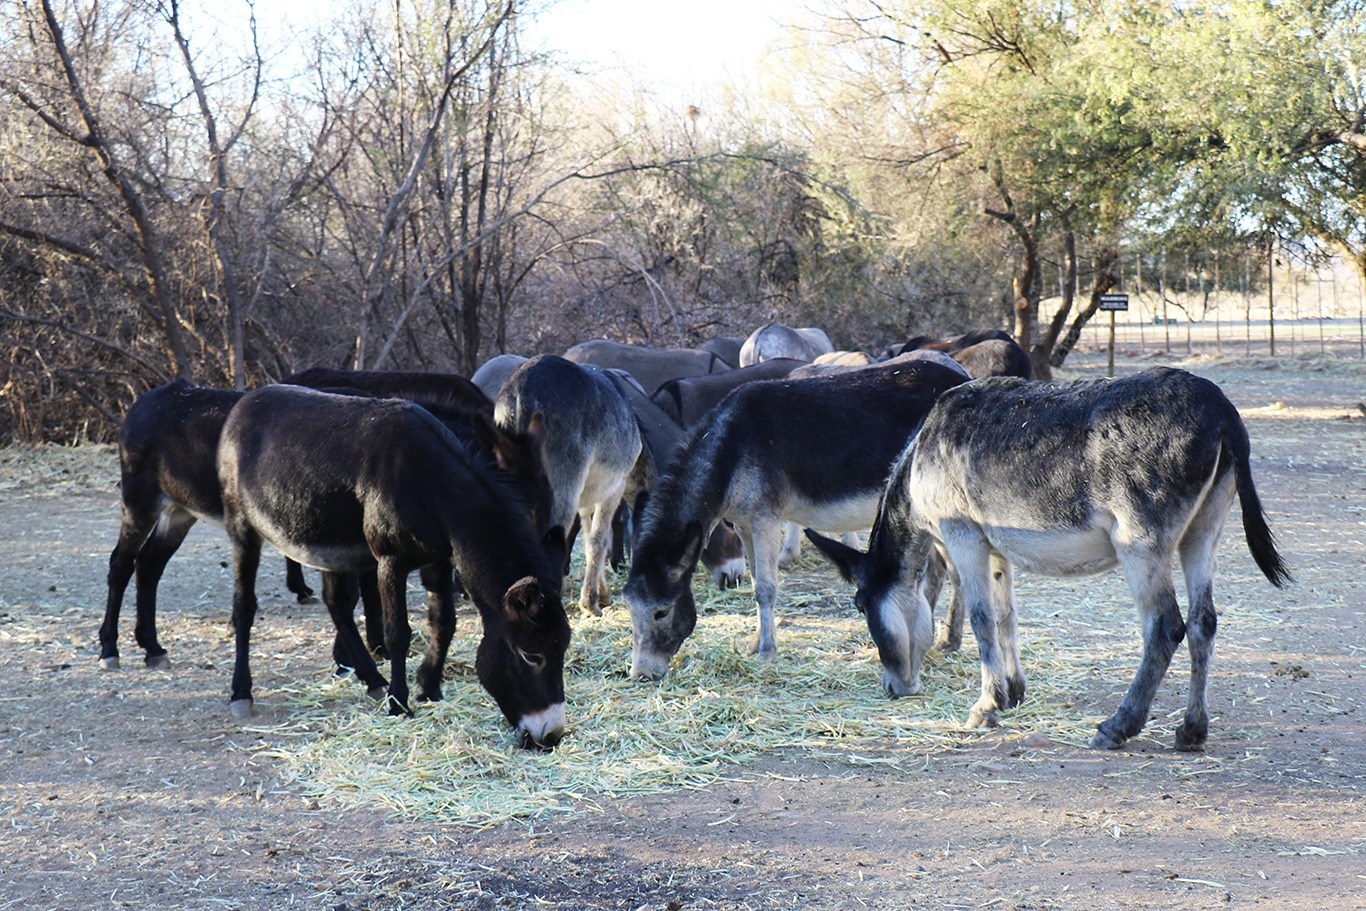 Coronavirus food shortages and now drought conditions threaten our rescued donkeys! 2